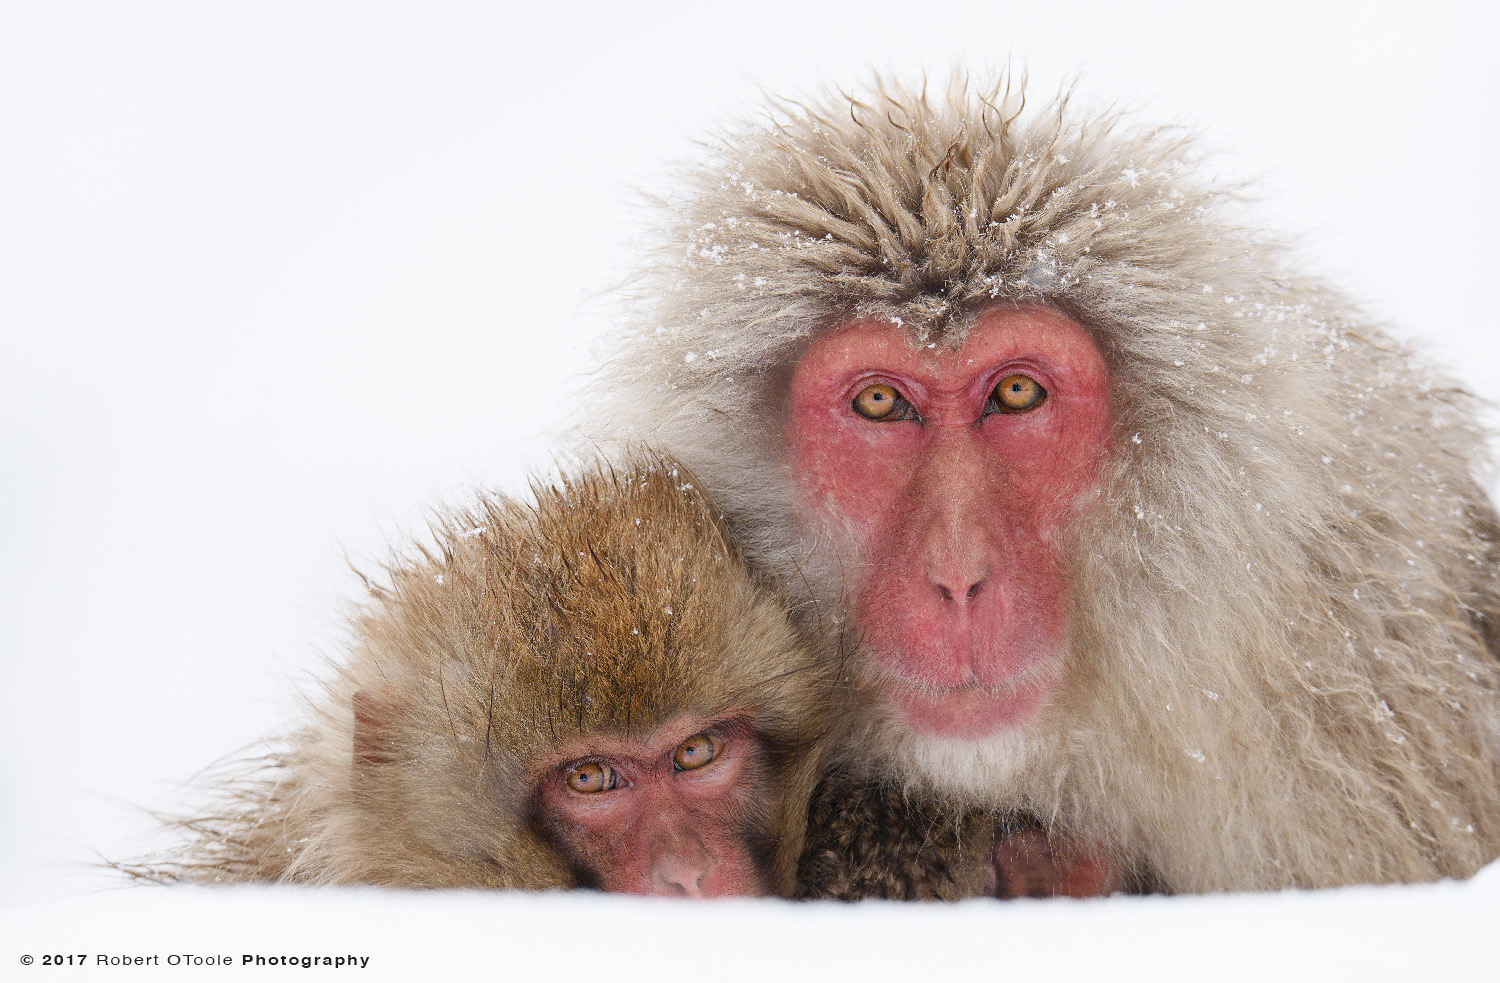 Mature Snow Monkey with Younger Monkeys Looking up in the snow